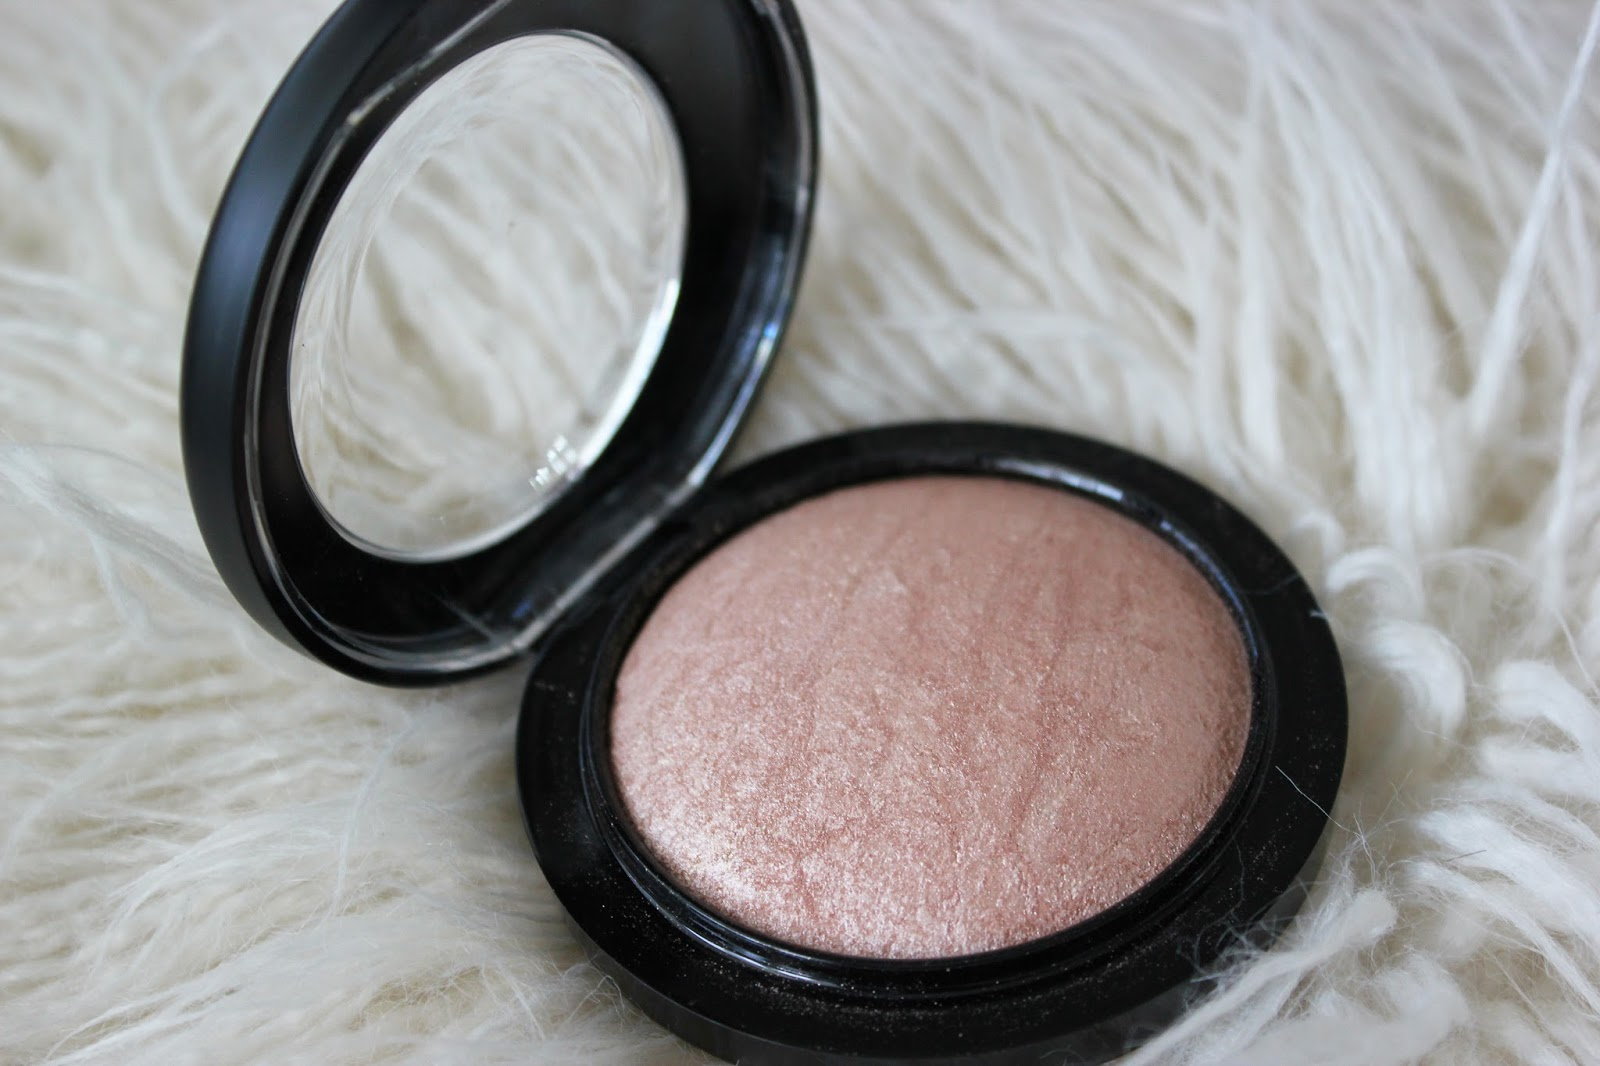 Mac Cosmetics Mineralize Skin Finish Soft And Gentle